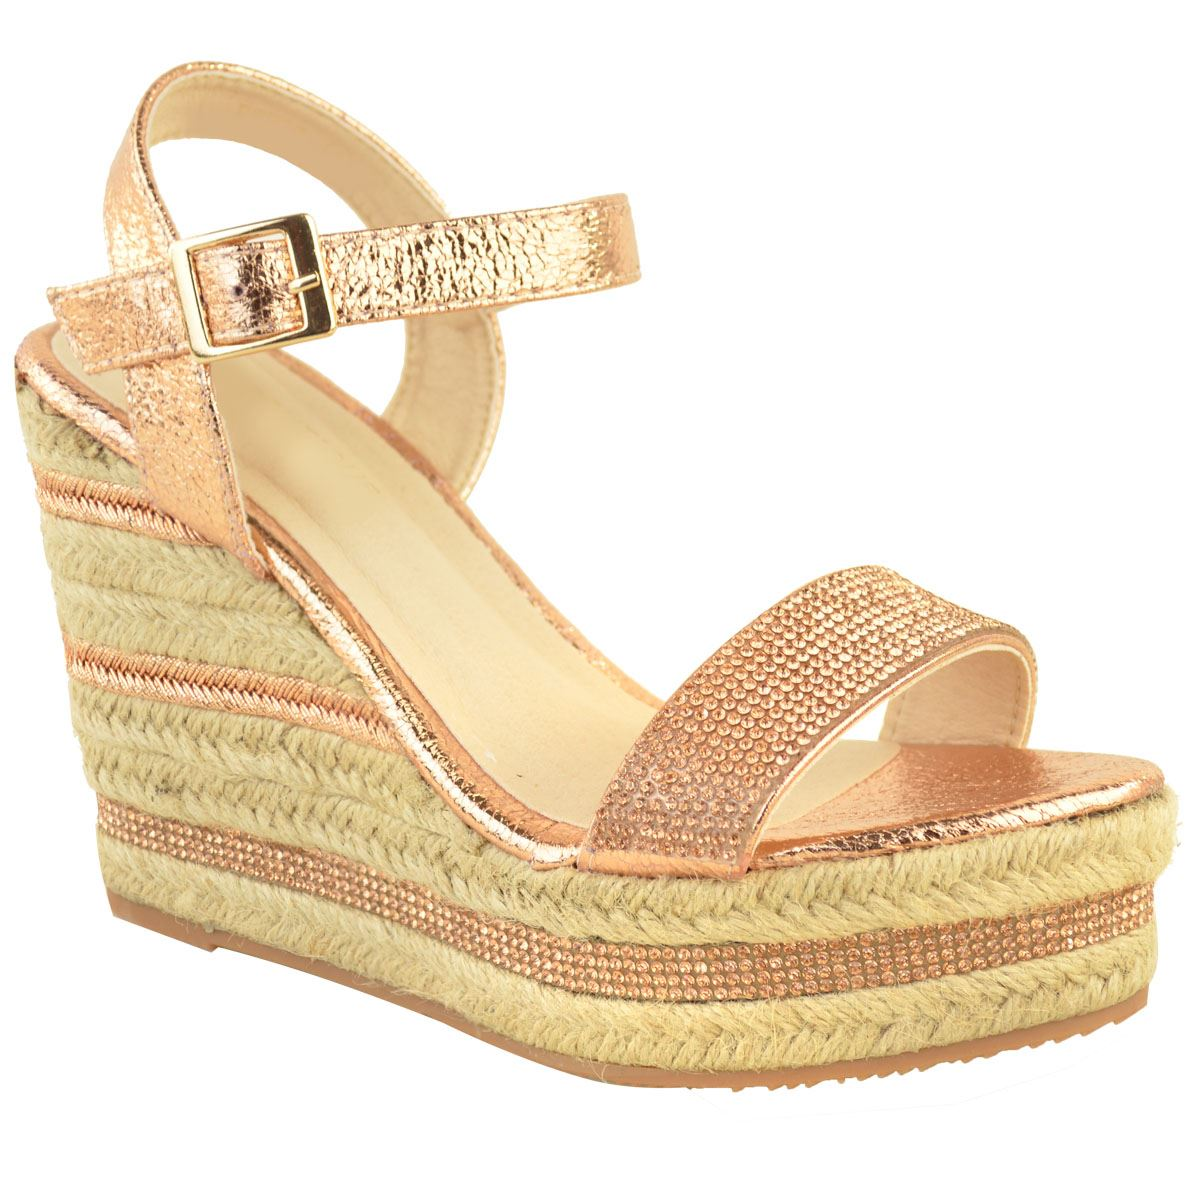 Womens-Ladies-Wedged-High-Heel-Sandals-Raffia-Diamante-Party-Shoes-Summer-Size thumbnail 8